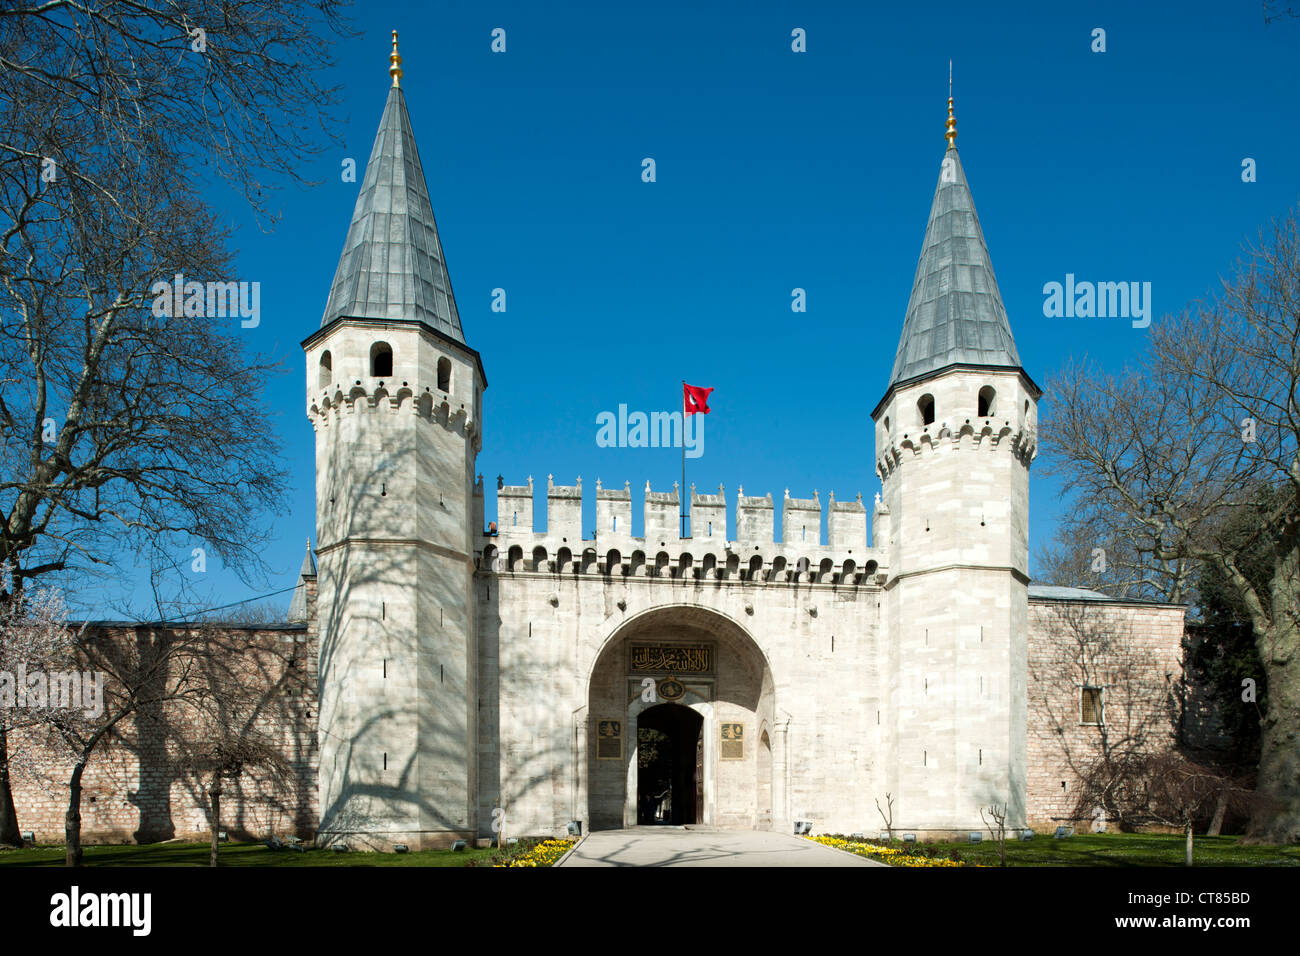 Türkei, Istanbul, Sultanahmet, Topkapi Saray, Bab-üs Selam, The Gate of Salutation, entrance to the Second - Stock Image